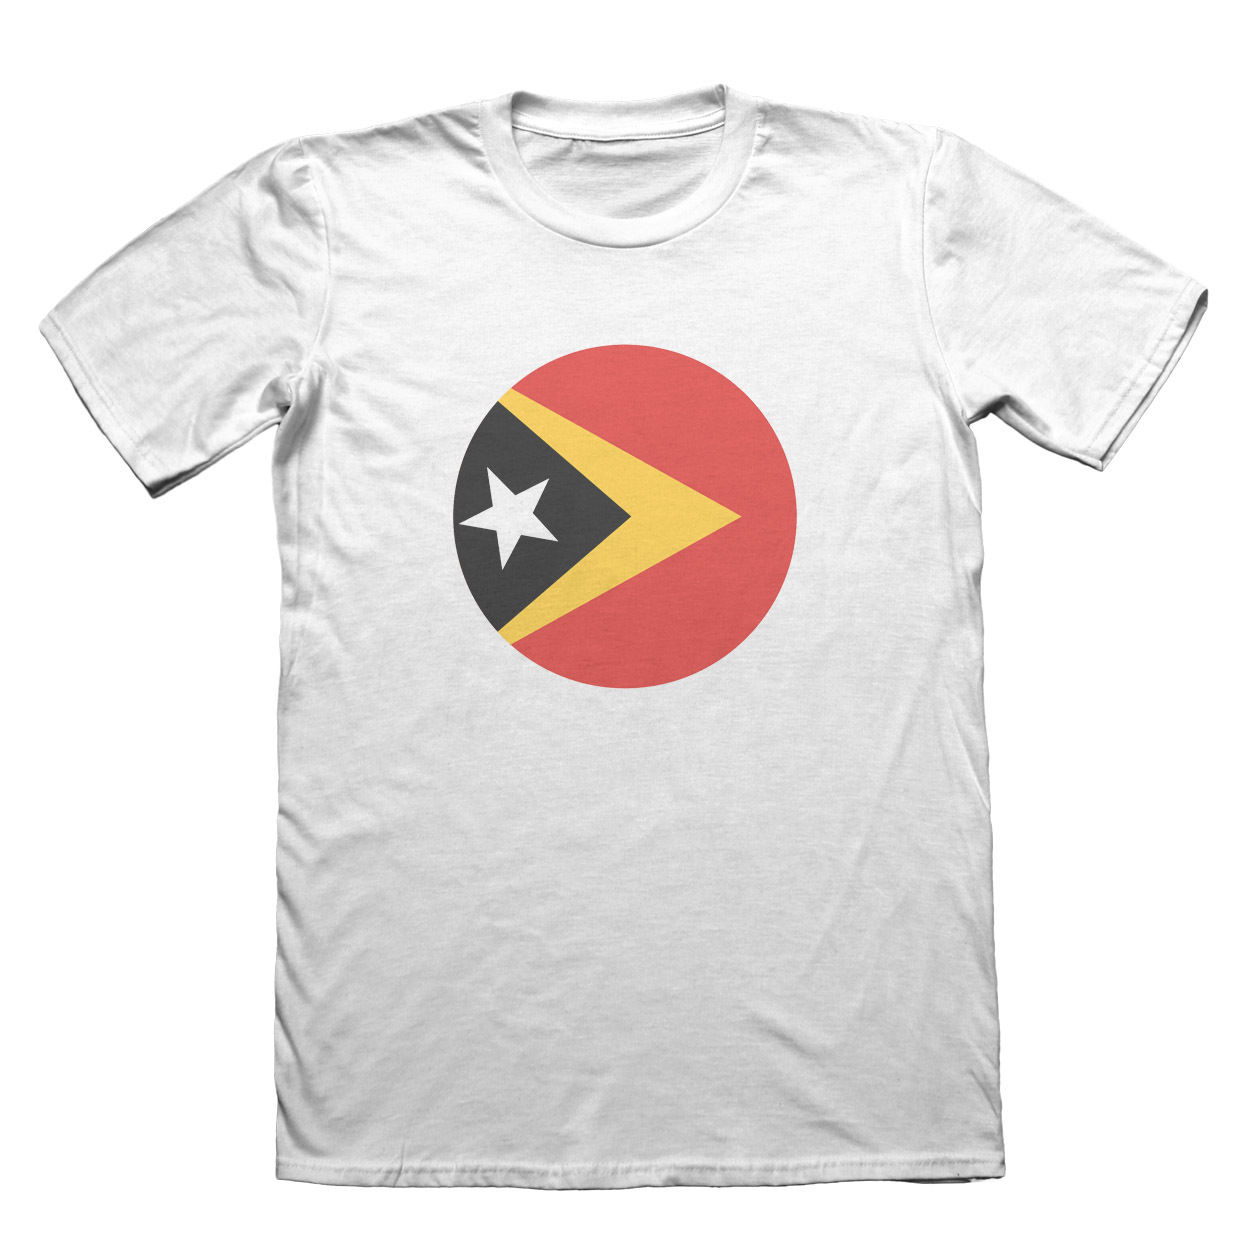 East Timor Flag Design T-Shirt - Mens Fathers Day Christmas #9108 ...